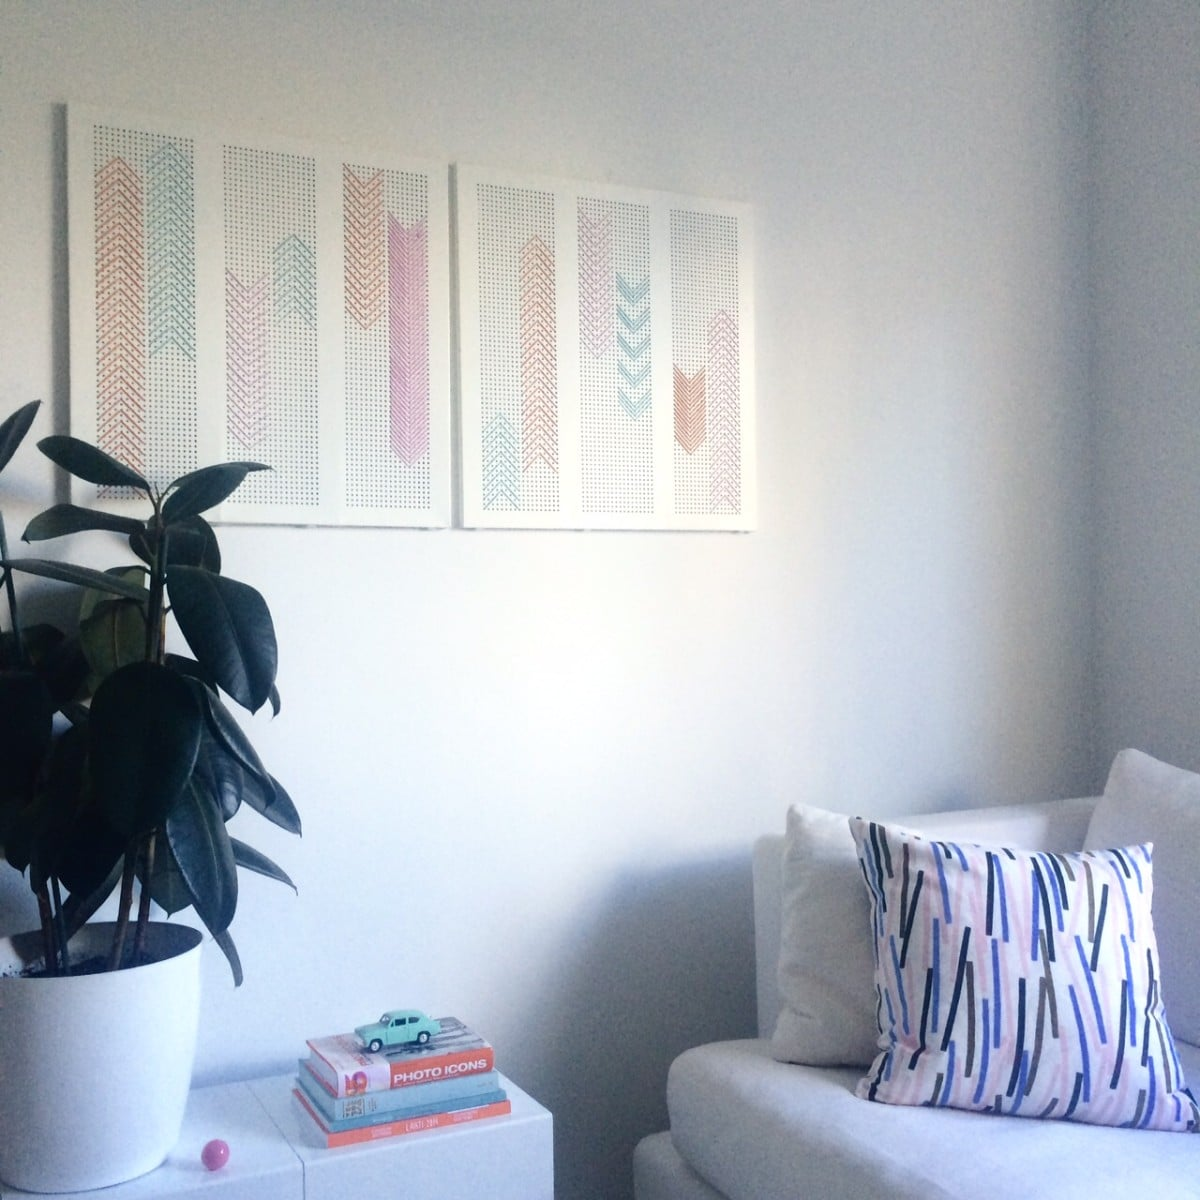 Broken Algot Shelf To Wall Art For Living Room Ikea Hackers